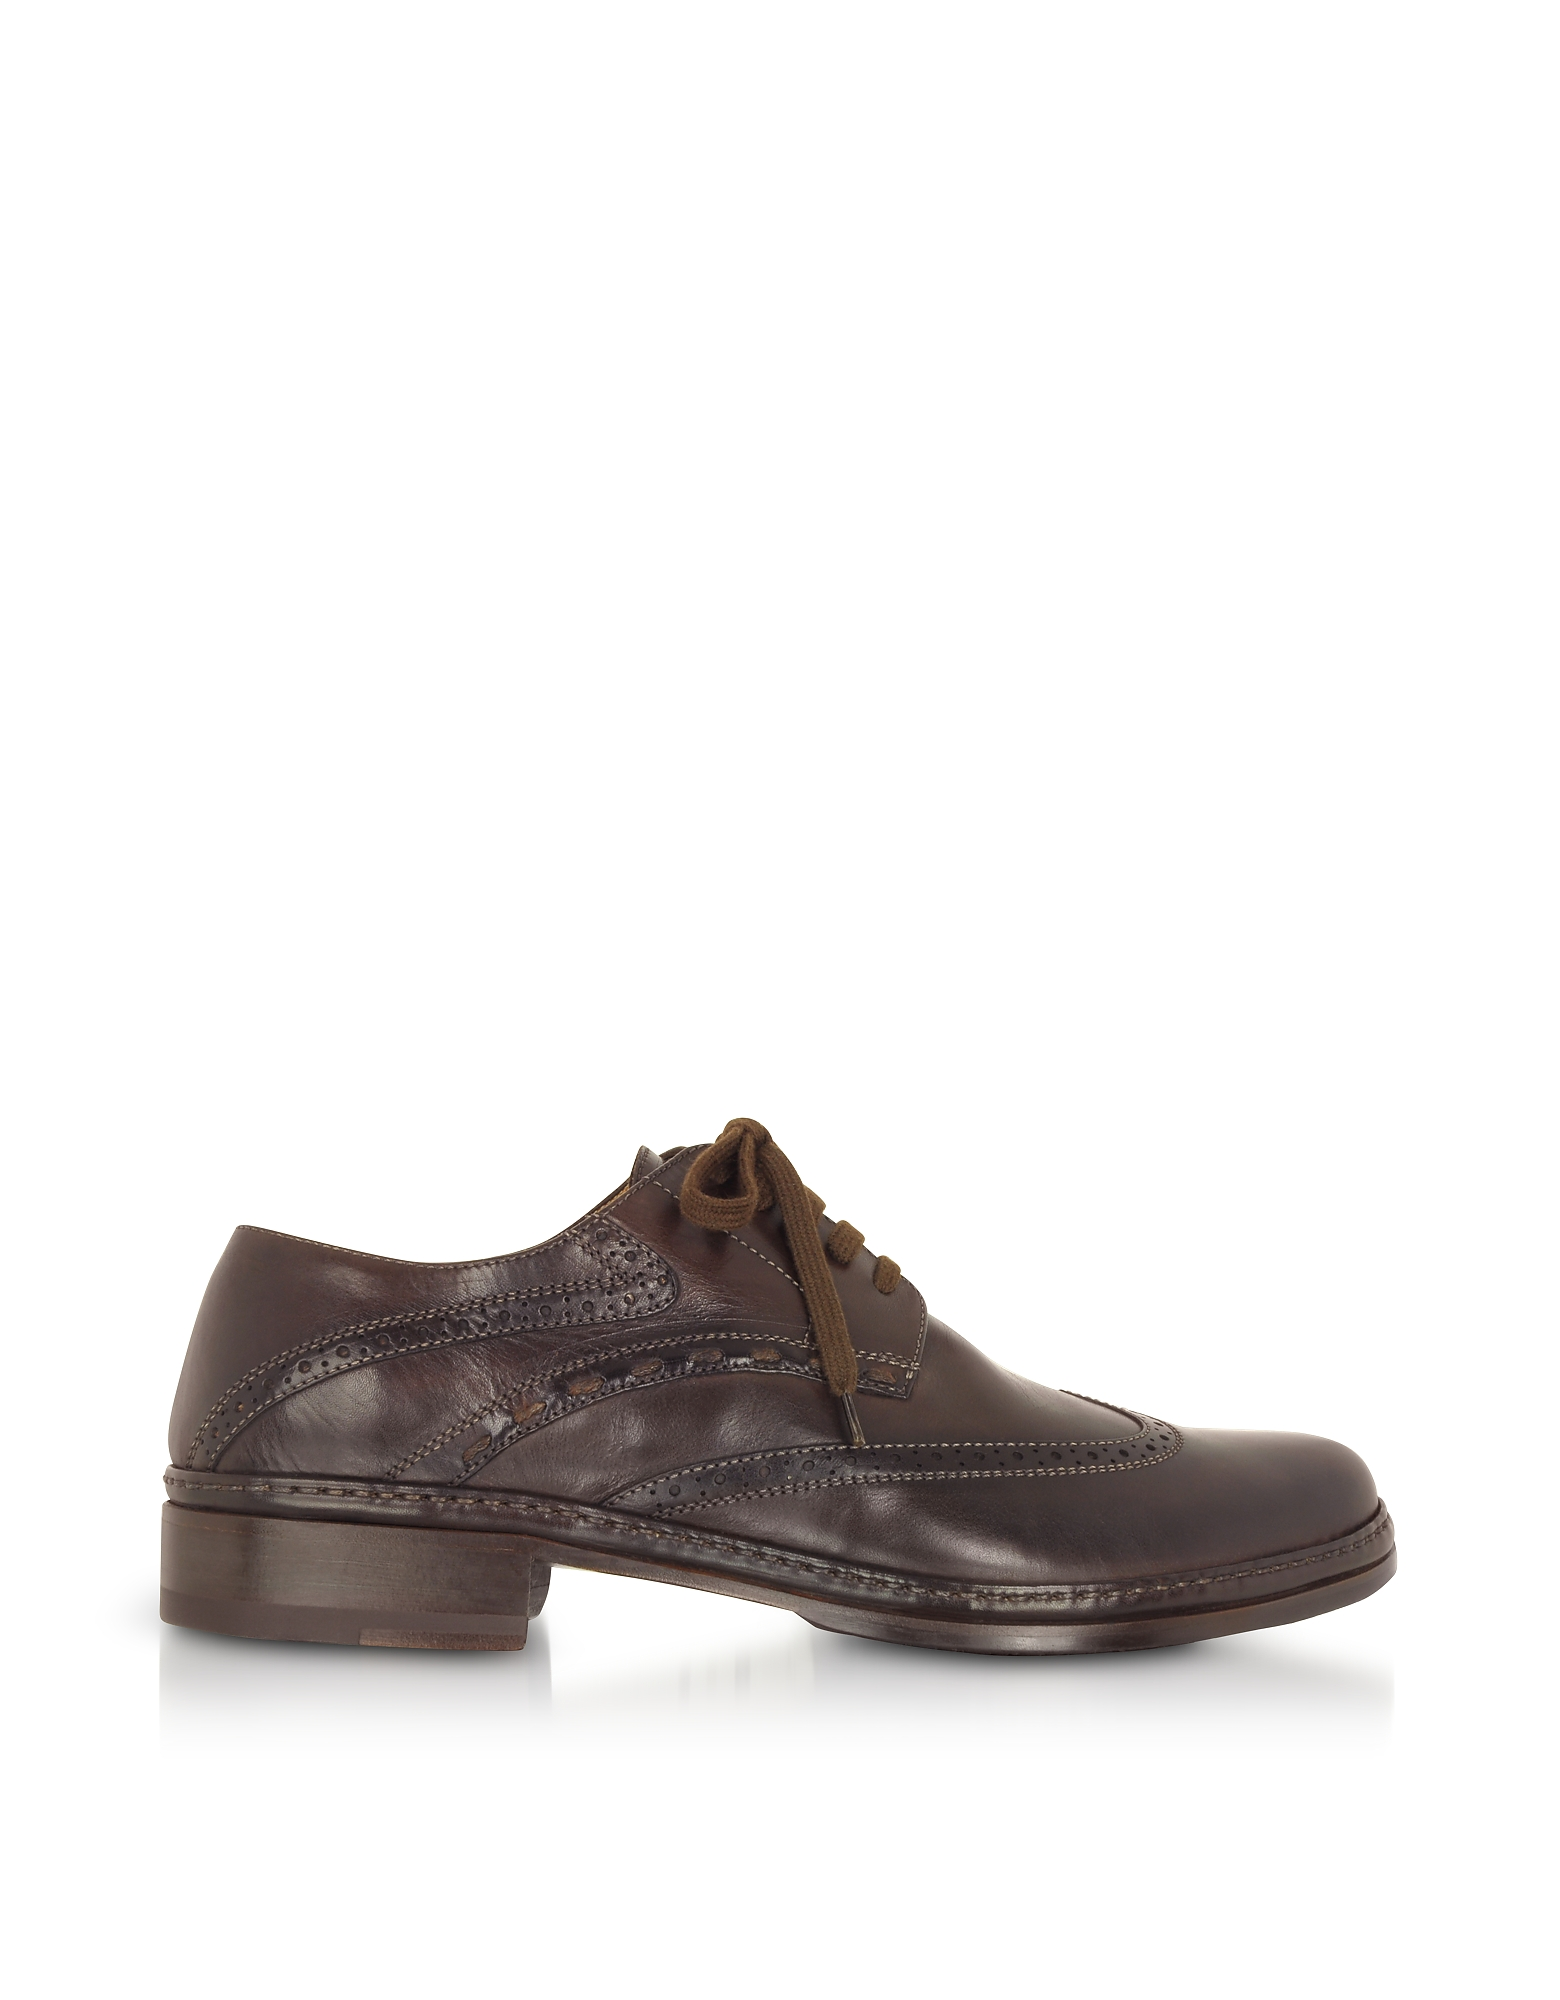 Image of Pakerson Designer Shoes, Dark Brown Handmade Italian Leather Wingtip Oxford Shoes